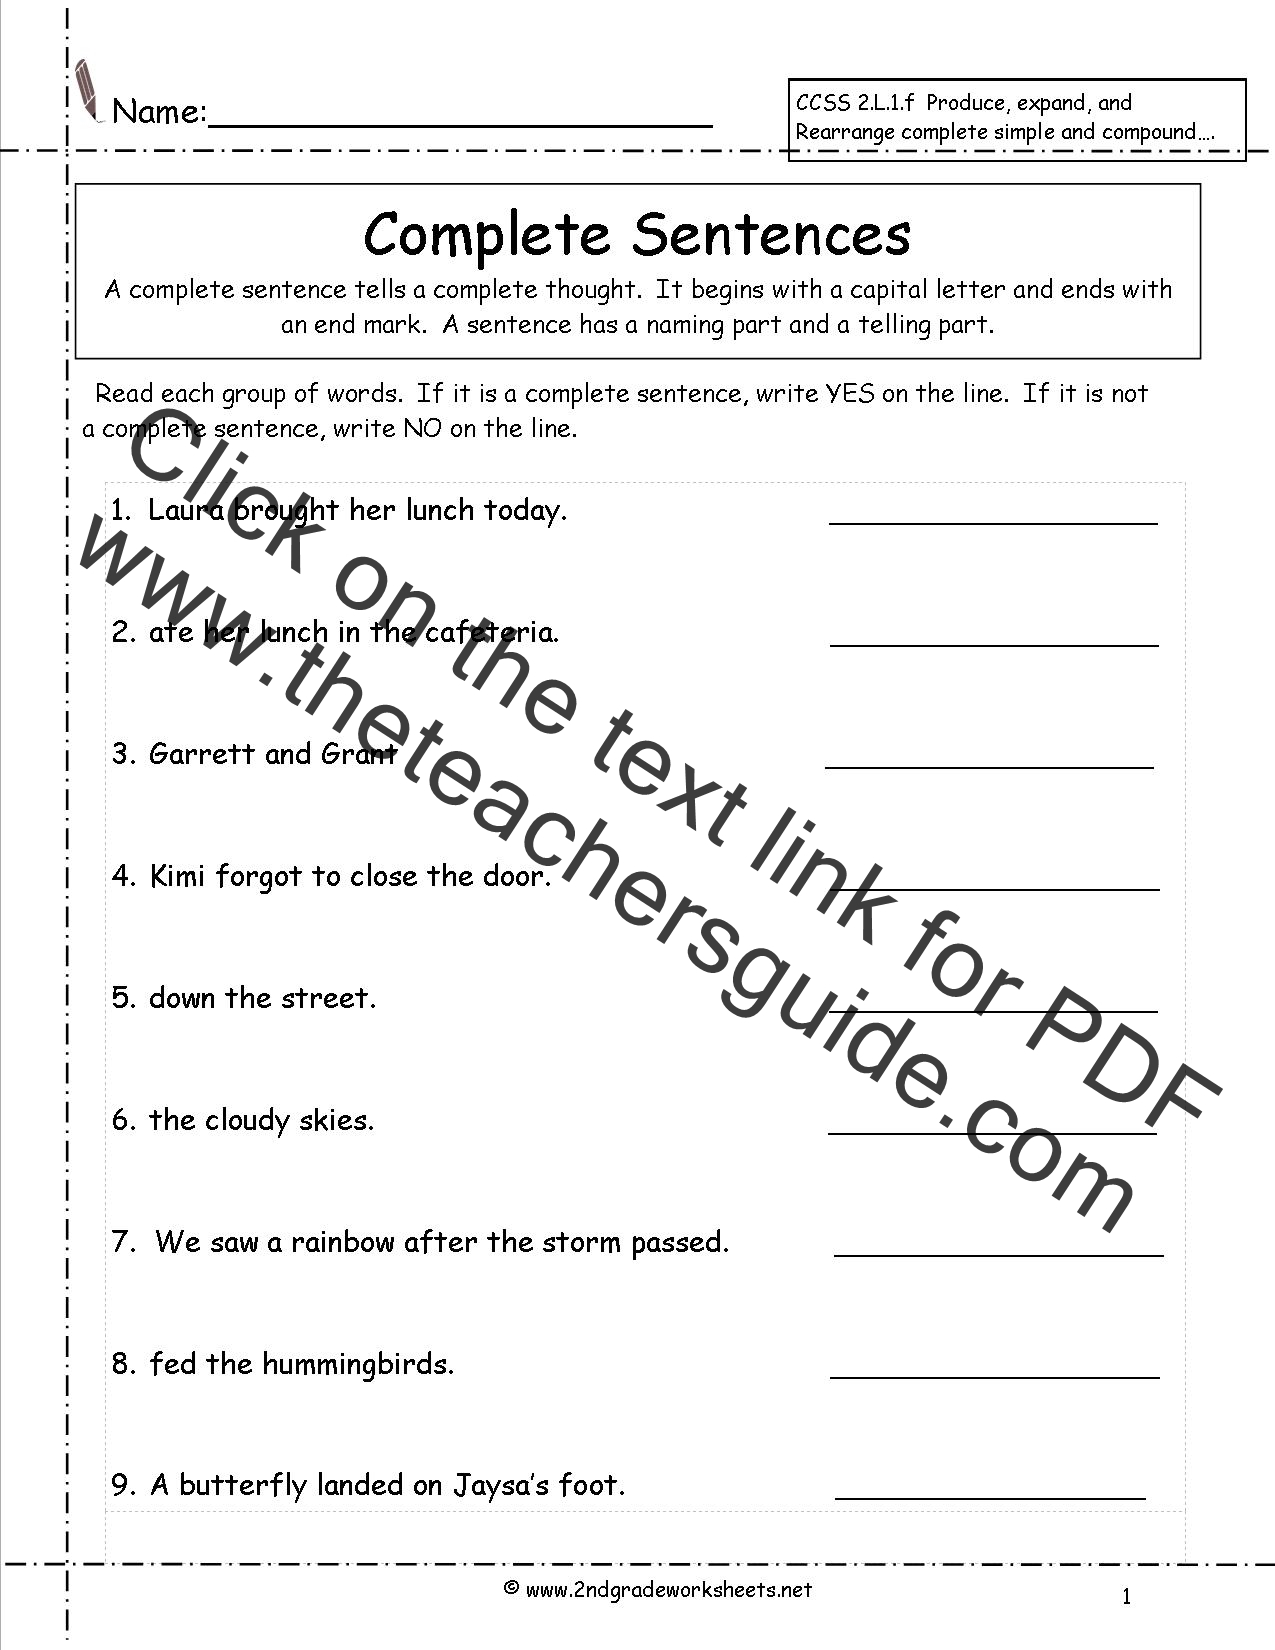 Worksheet Correcting Sentences Worksheets second grade sentences worksheets ccss 2 l 1 f complete worksheets